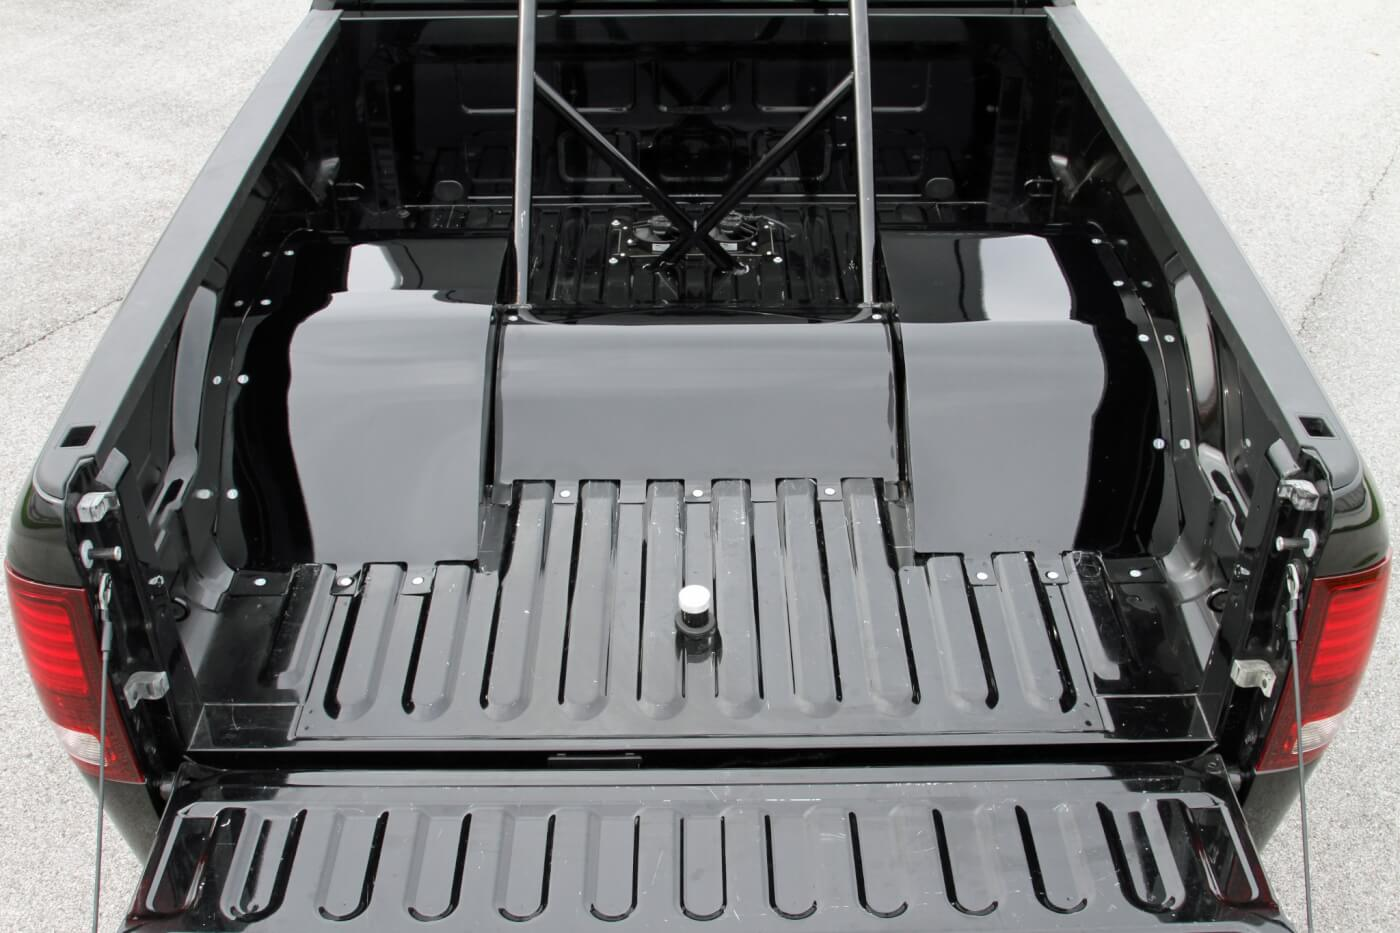 hight resolution of with the tailgate down you can see the fuel filler tube as well as the